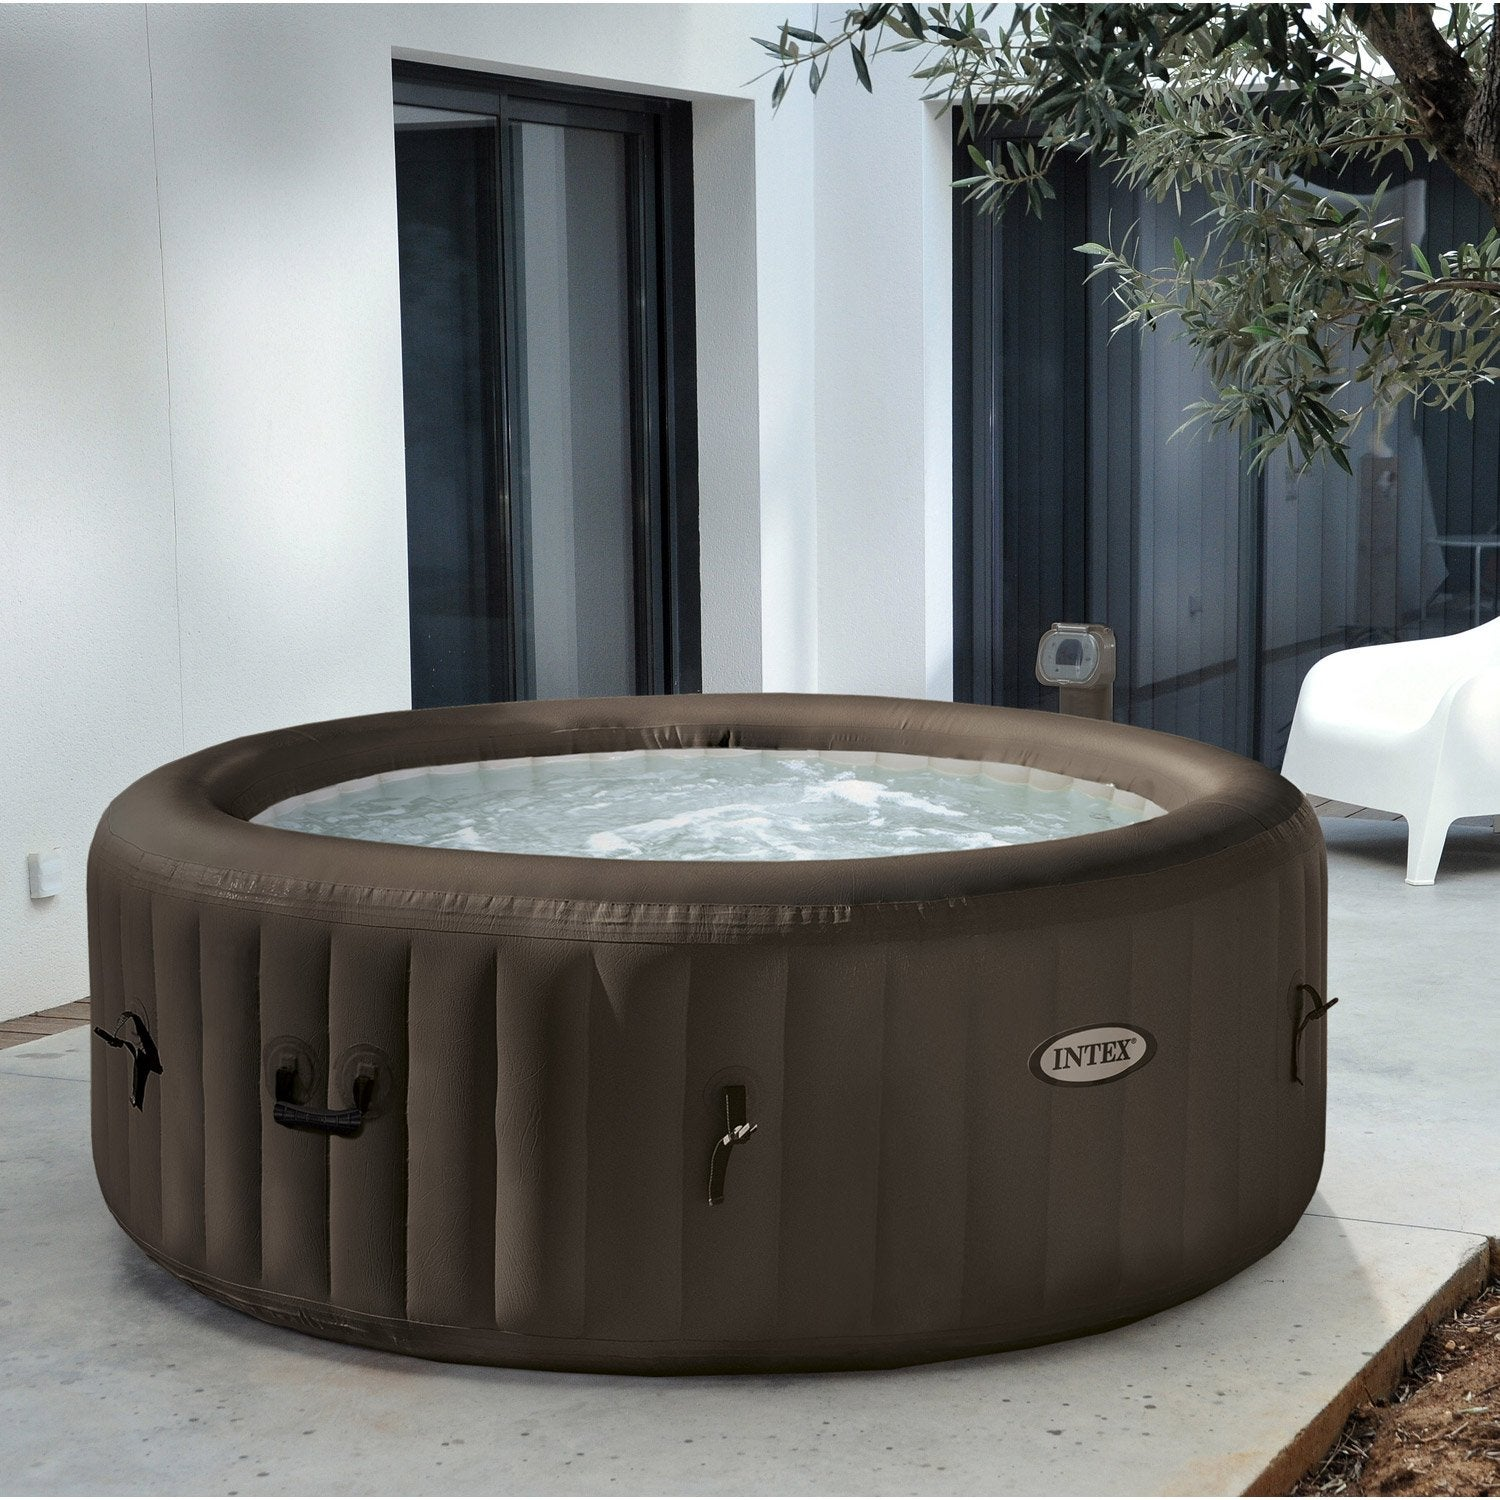 Spa gonflable intex purespa jets rond 4 places assises - Jacuzzi exterieur leroy merlin ...